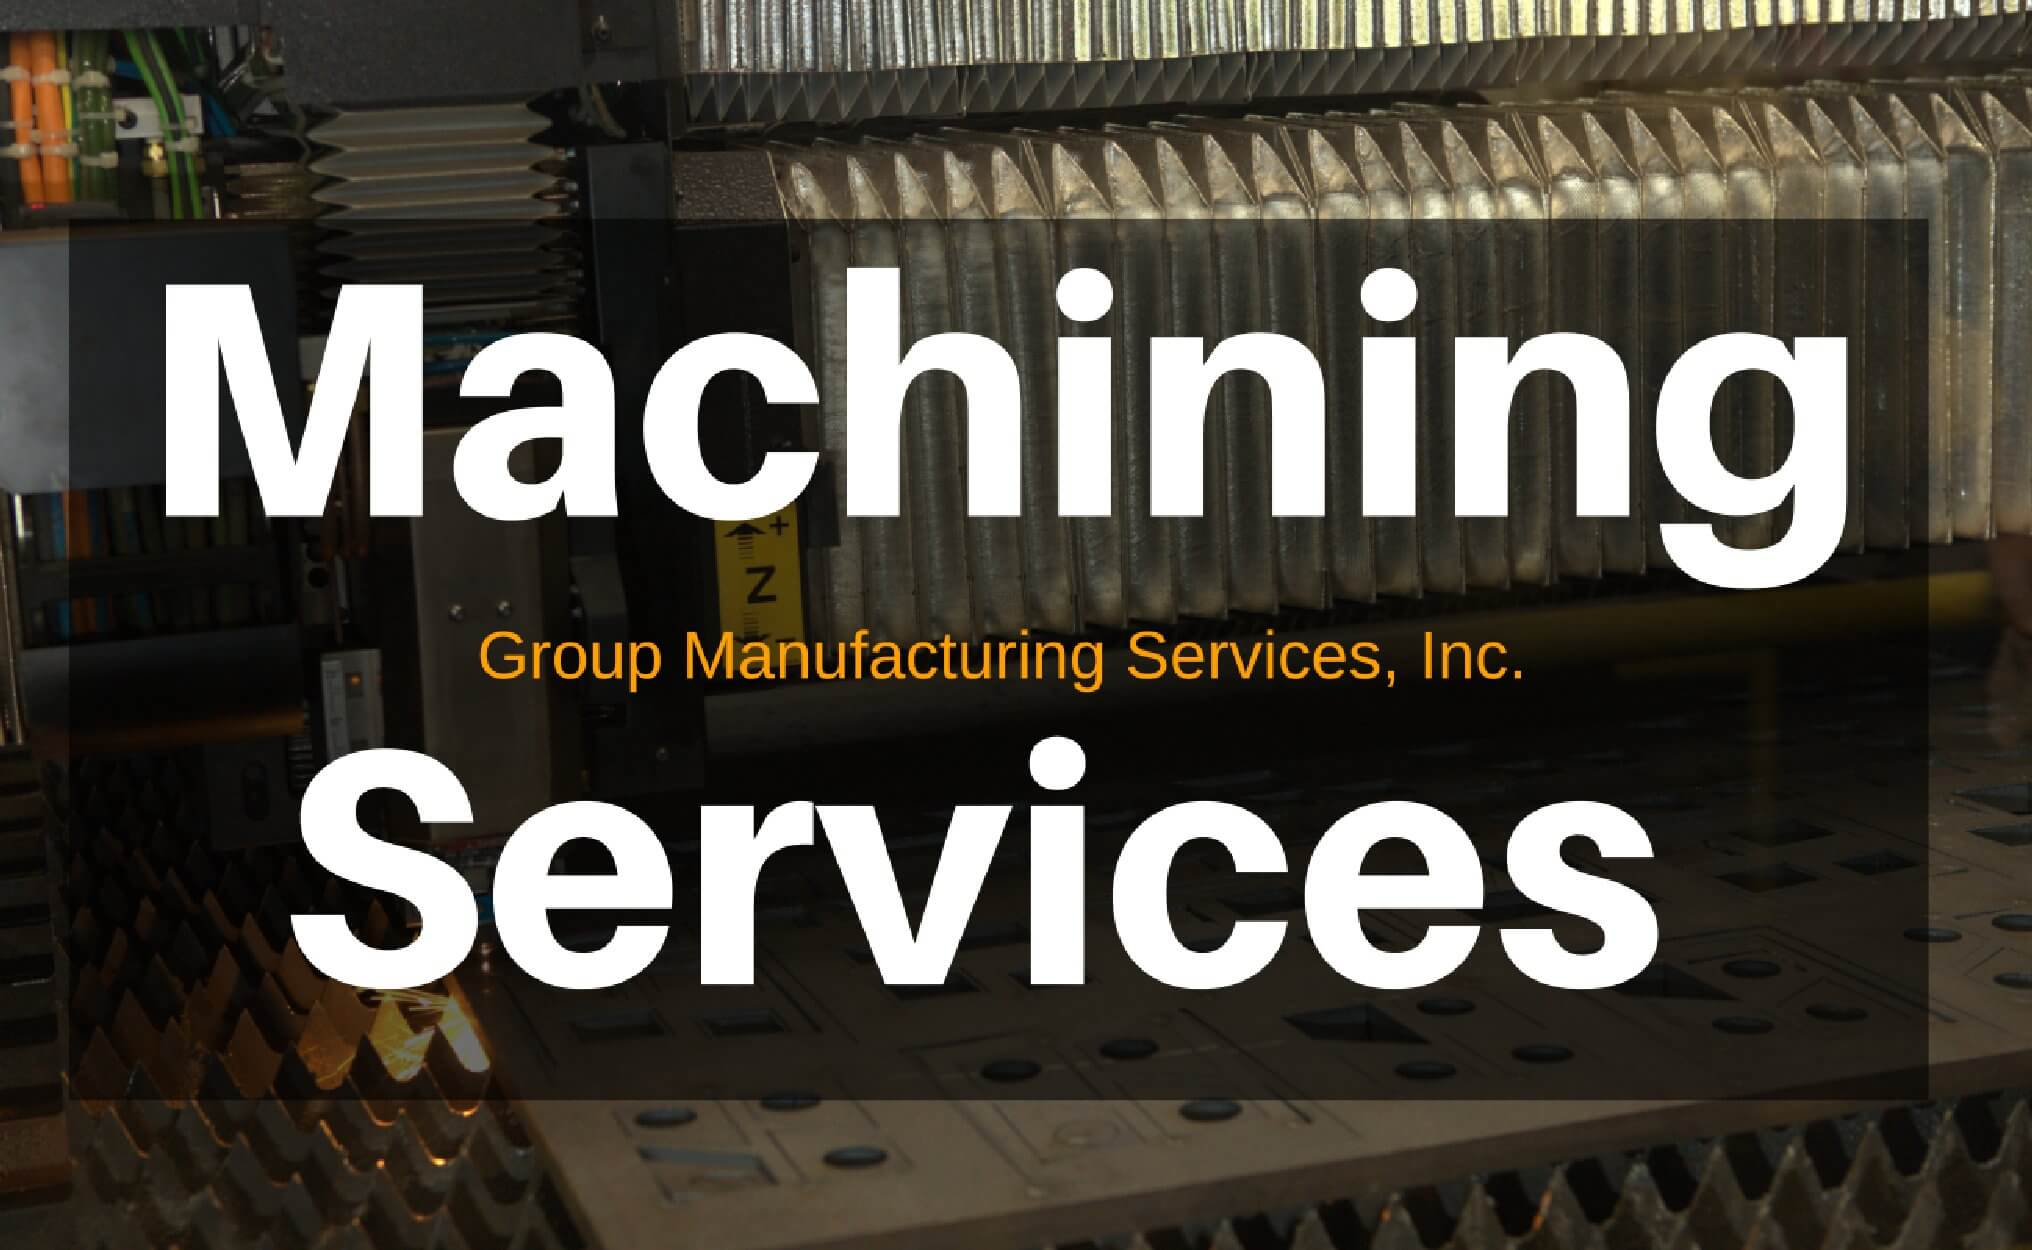 Machining Services In Arizona From Group Manufacturing